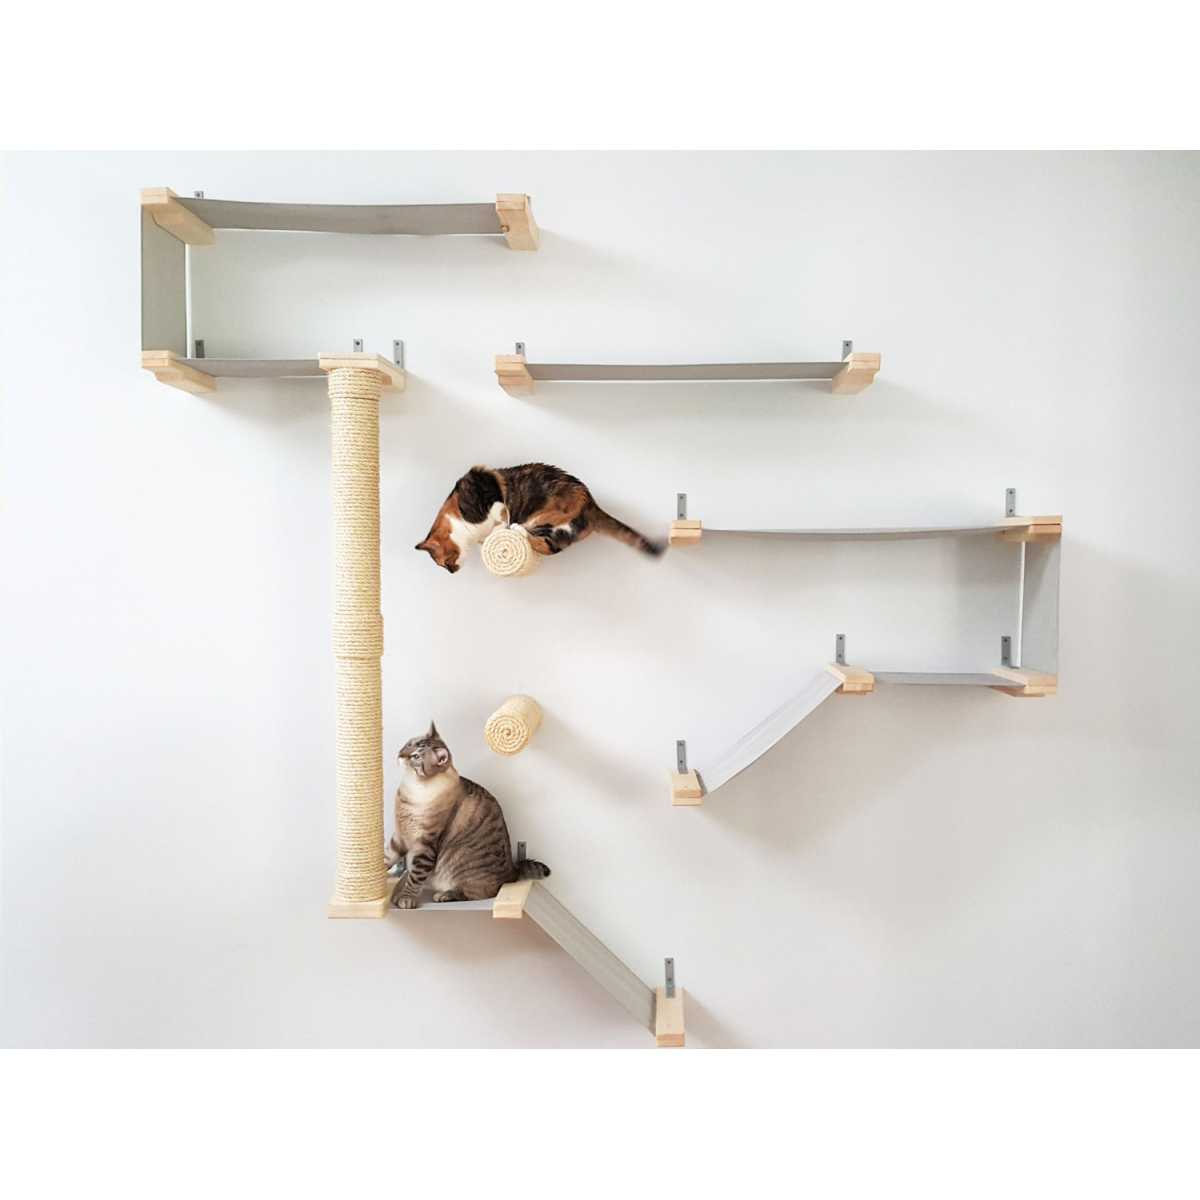 Catastrophicreations Thunderdome Wall Mounted Cat